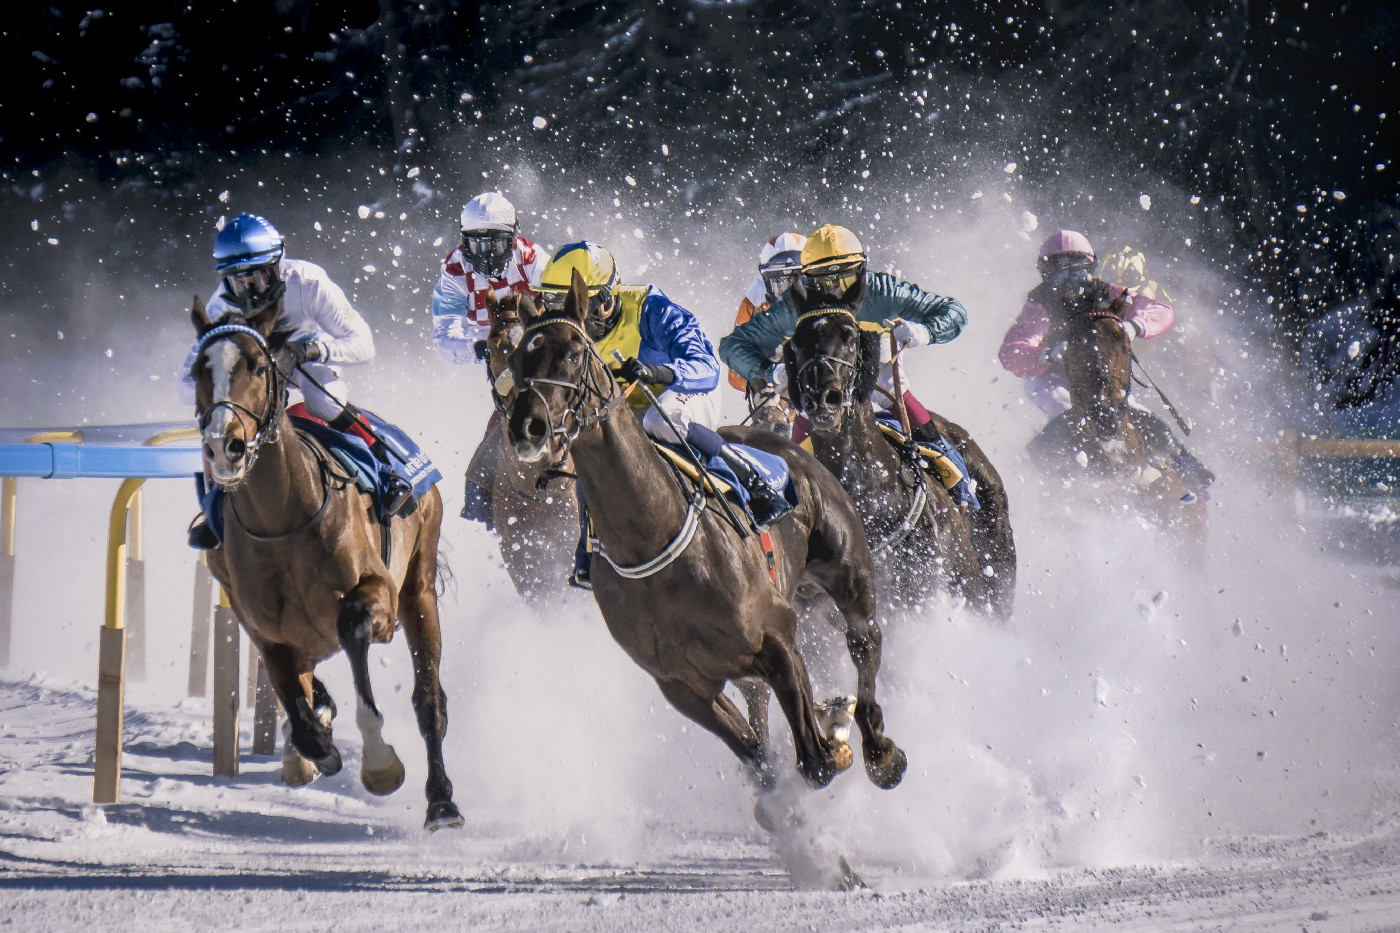 Horses racing on a track lightly covered in snow